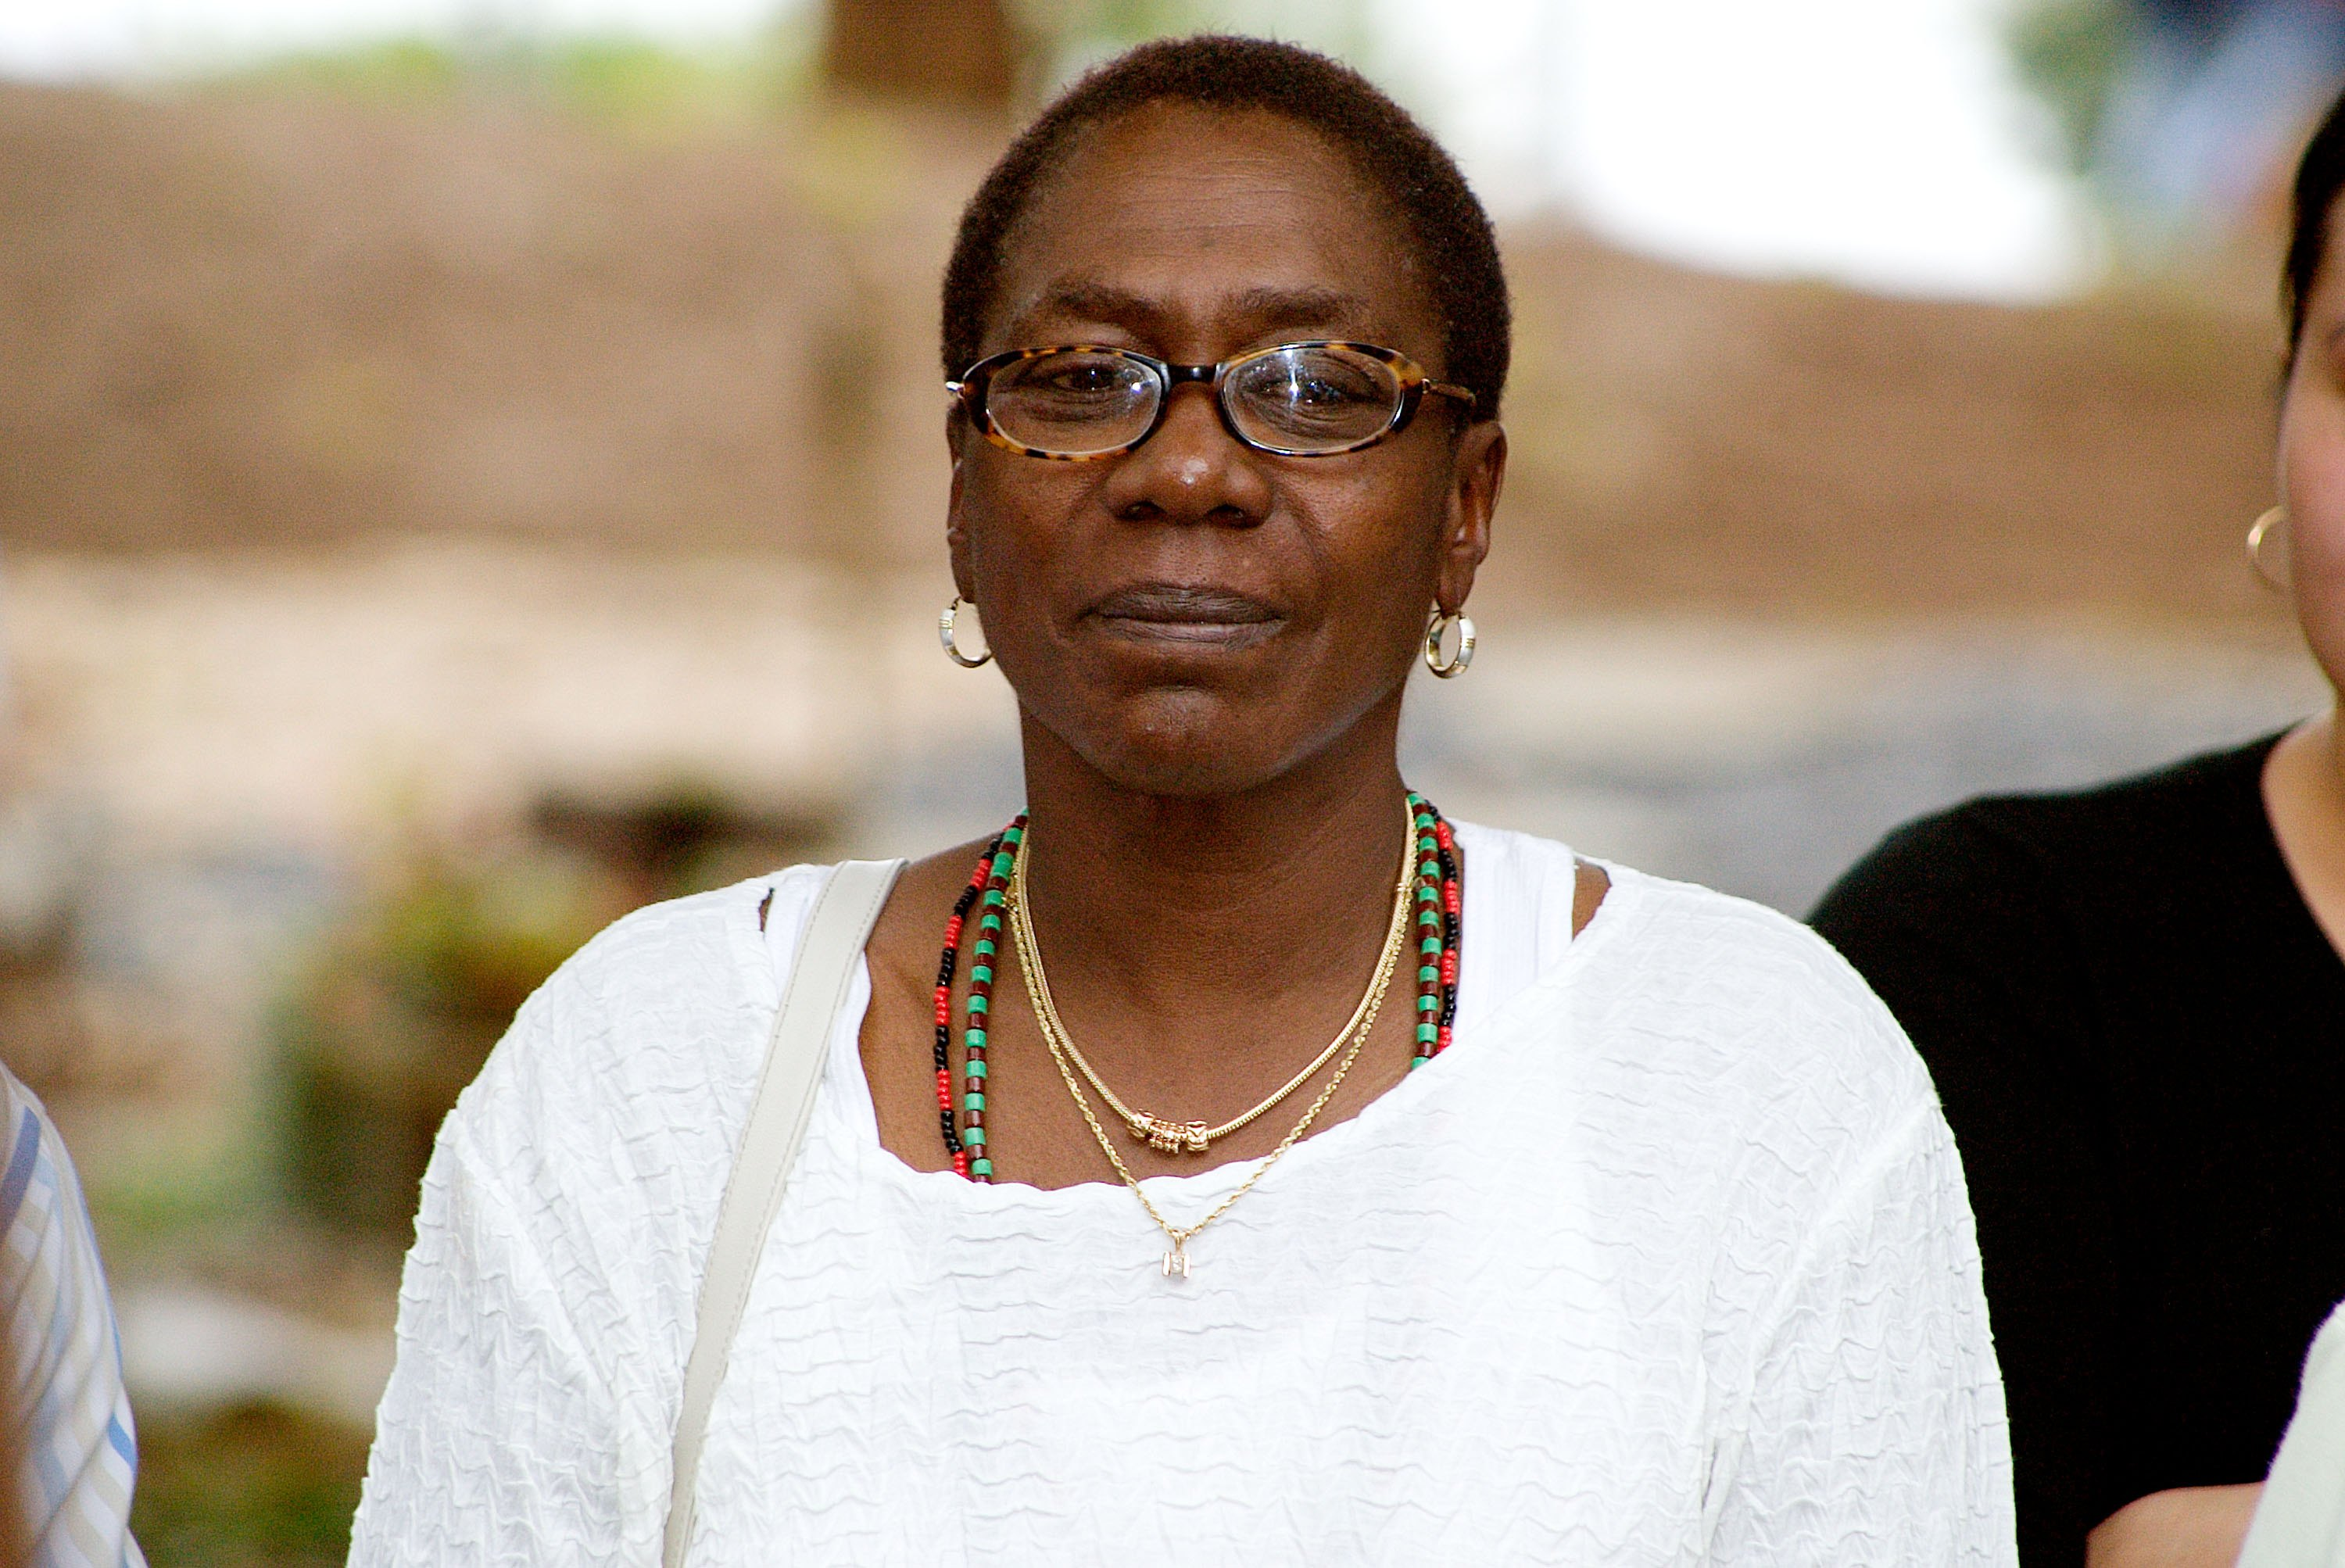 Afeni Shakur-Davis, mother of the late Tupac Shakur, watches the African drum ceremony marking the tenth anniversary of his death September 9, 2006 in Stone Mountain, Georgia.